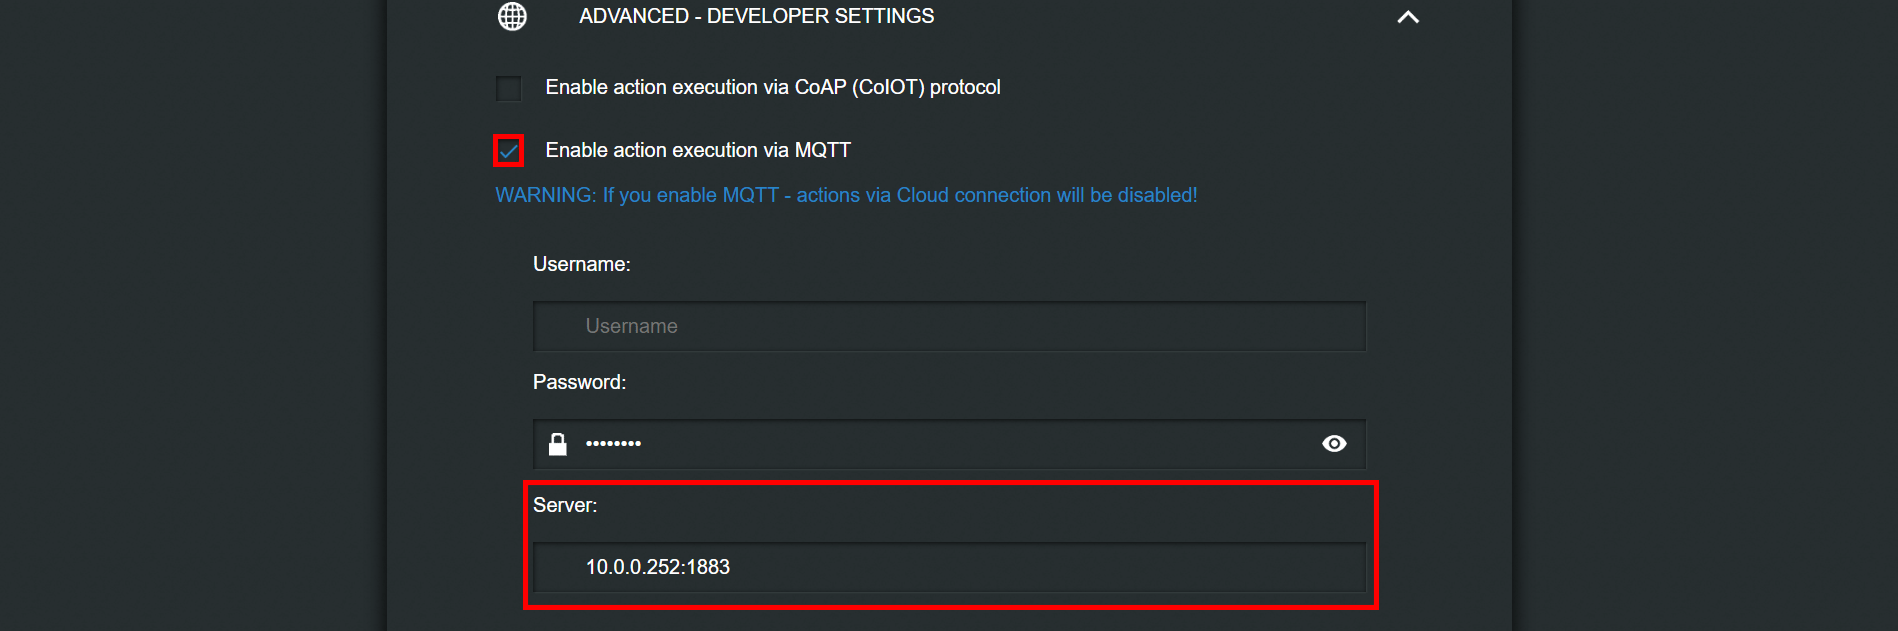 Completing the shelly MQTT configuration for the server